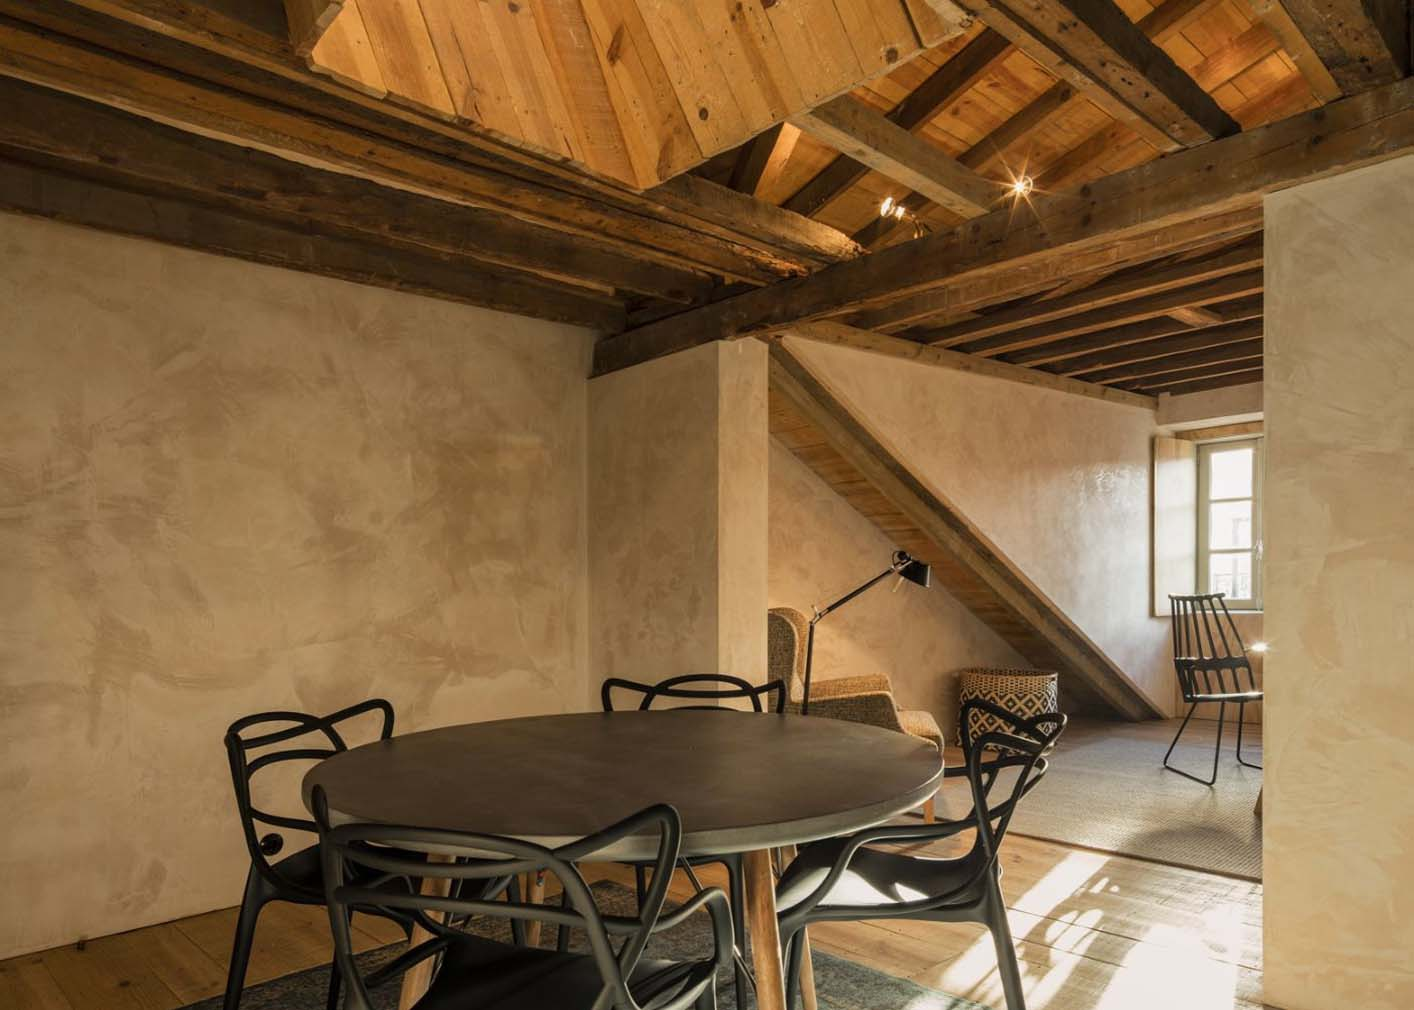 Portuguese practice CASCA paid homage to the city's history with its skilful 'makeunder' of this 18th-century Pombalino apartment, next to the São Jorge castle and Carmo Convent.